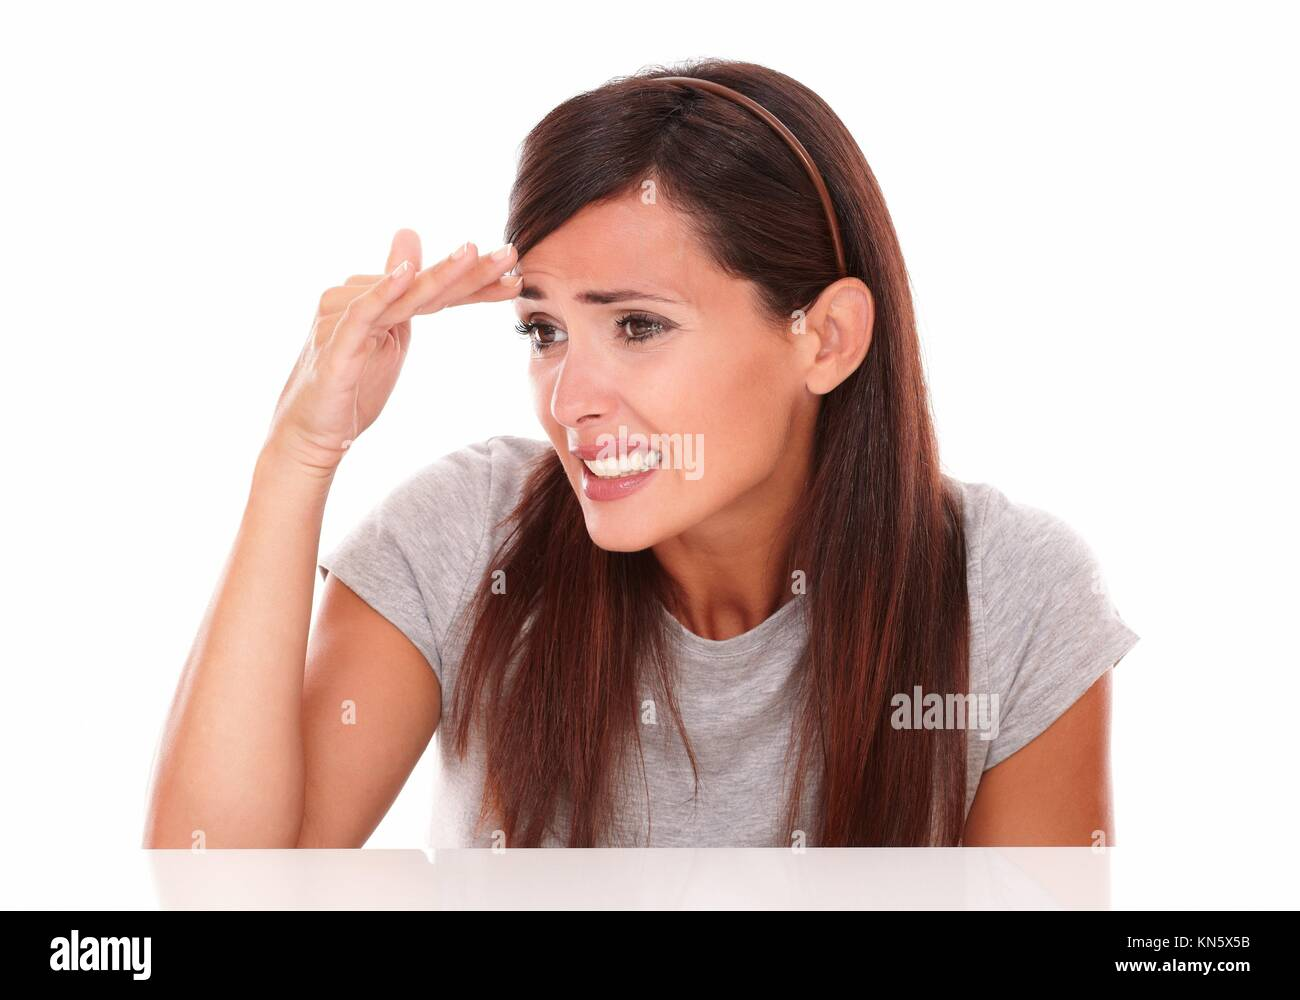 Headshot portrait of cute young woman with fail gesture looking to her right on isolated studio. - Stock Image